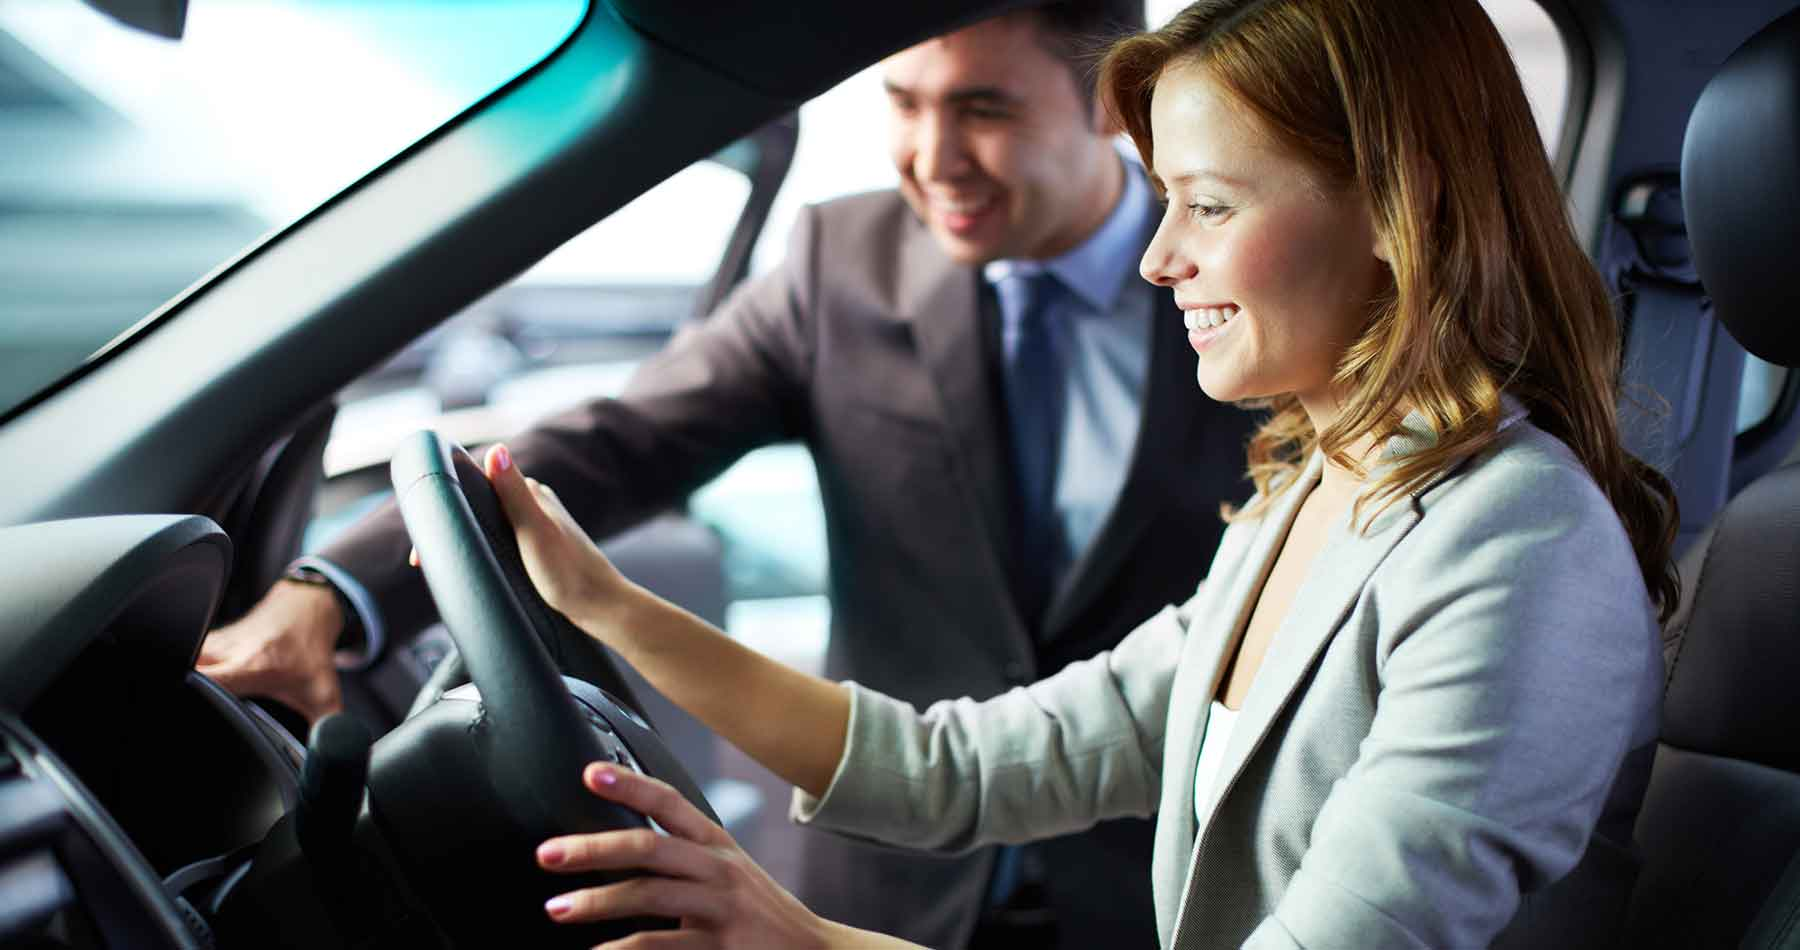 Purchasing a New Vehicle Using No Credit Check Loans